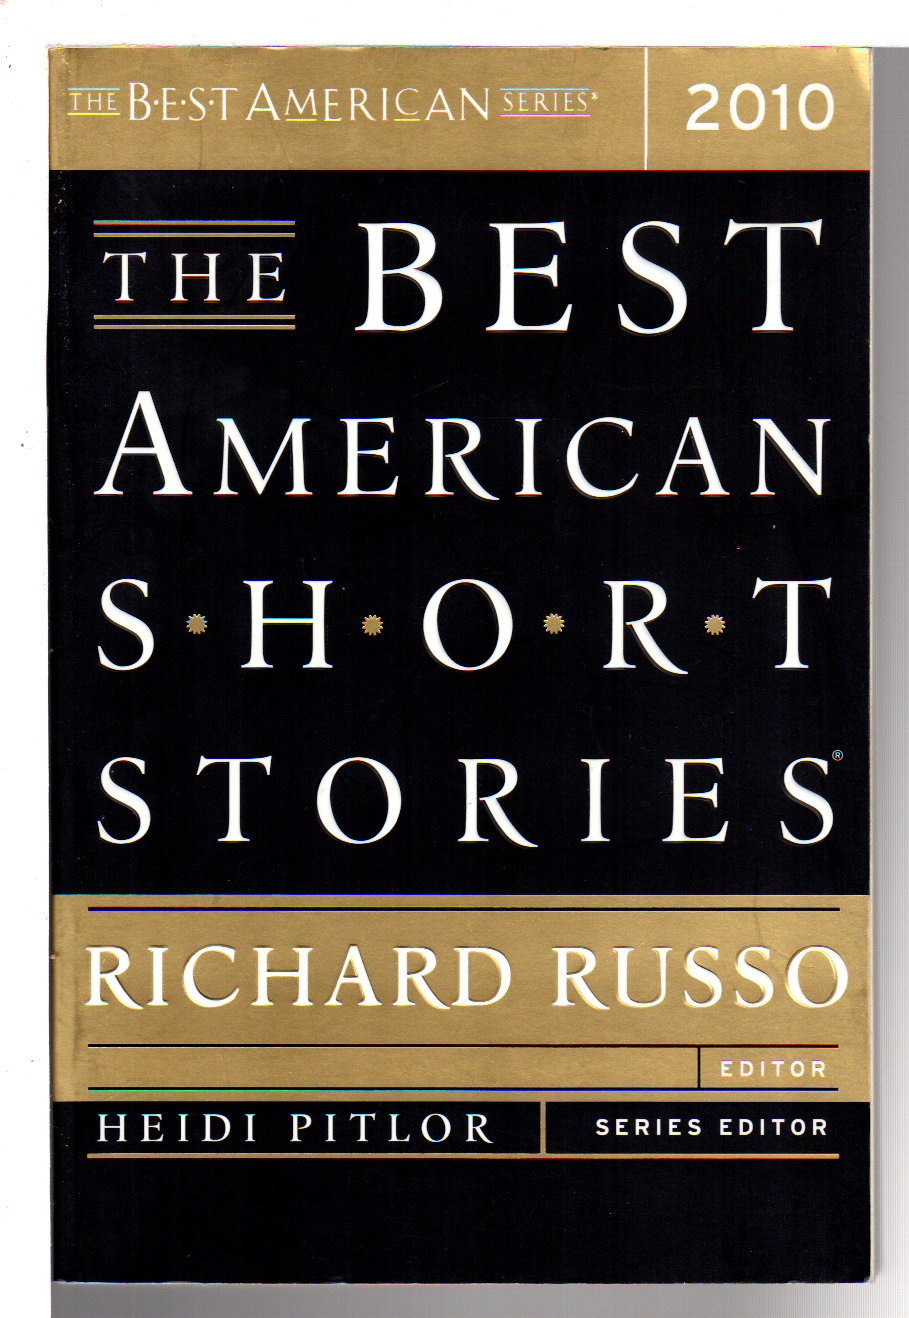 [ANTHOLOGY, SIGNED] SHEPARD, JIM , SIGNED;  RUSSO, RICHARD, EDITOR. - THE BEST AMERICAN SHORT STORIES 2010.